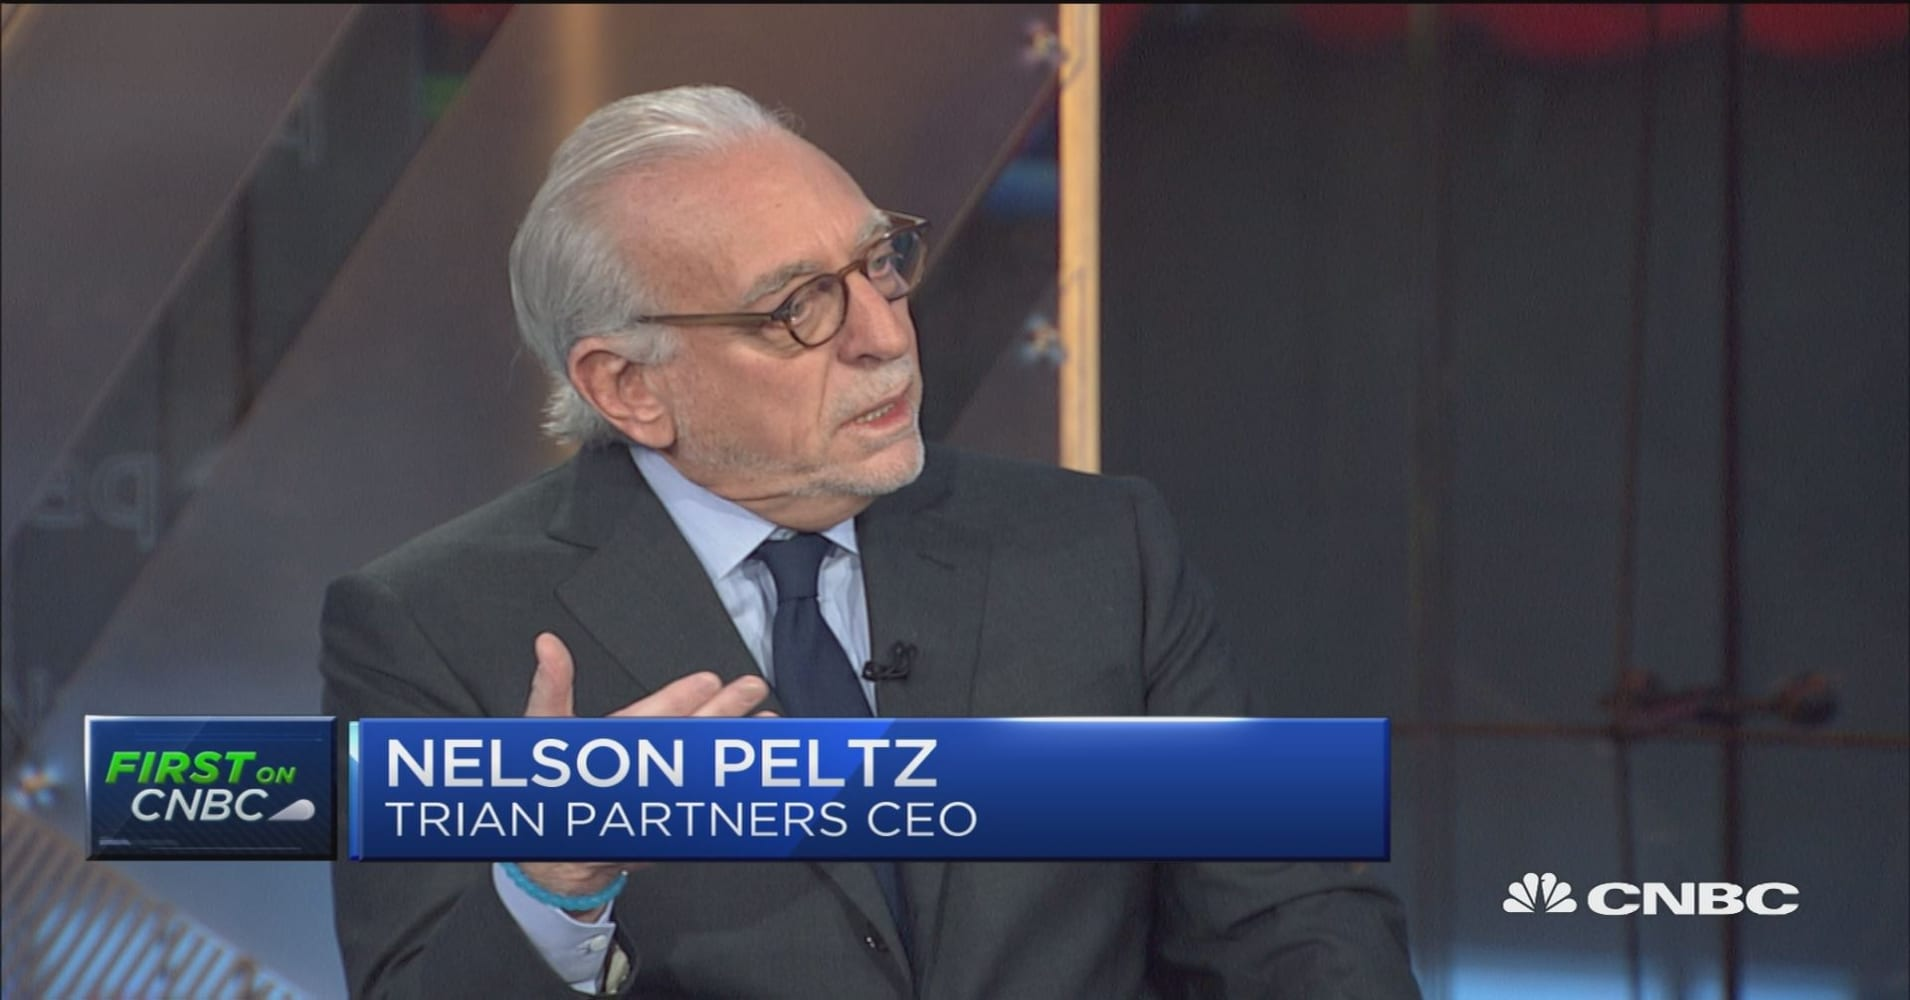 Nelson peltz pg has spent 100 million in dumbest proxy fight nelson peltz i think pg has lost its soul biocorpaavc